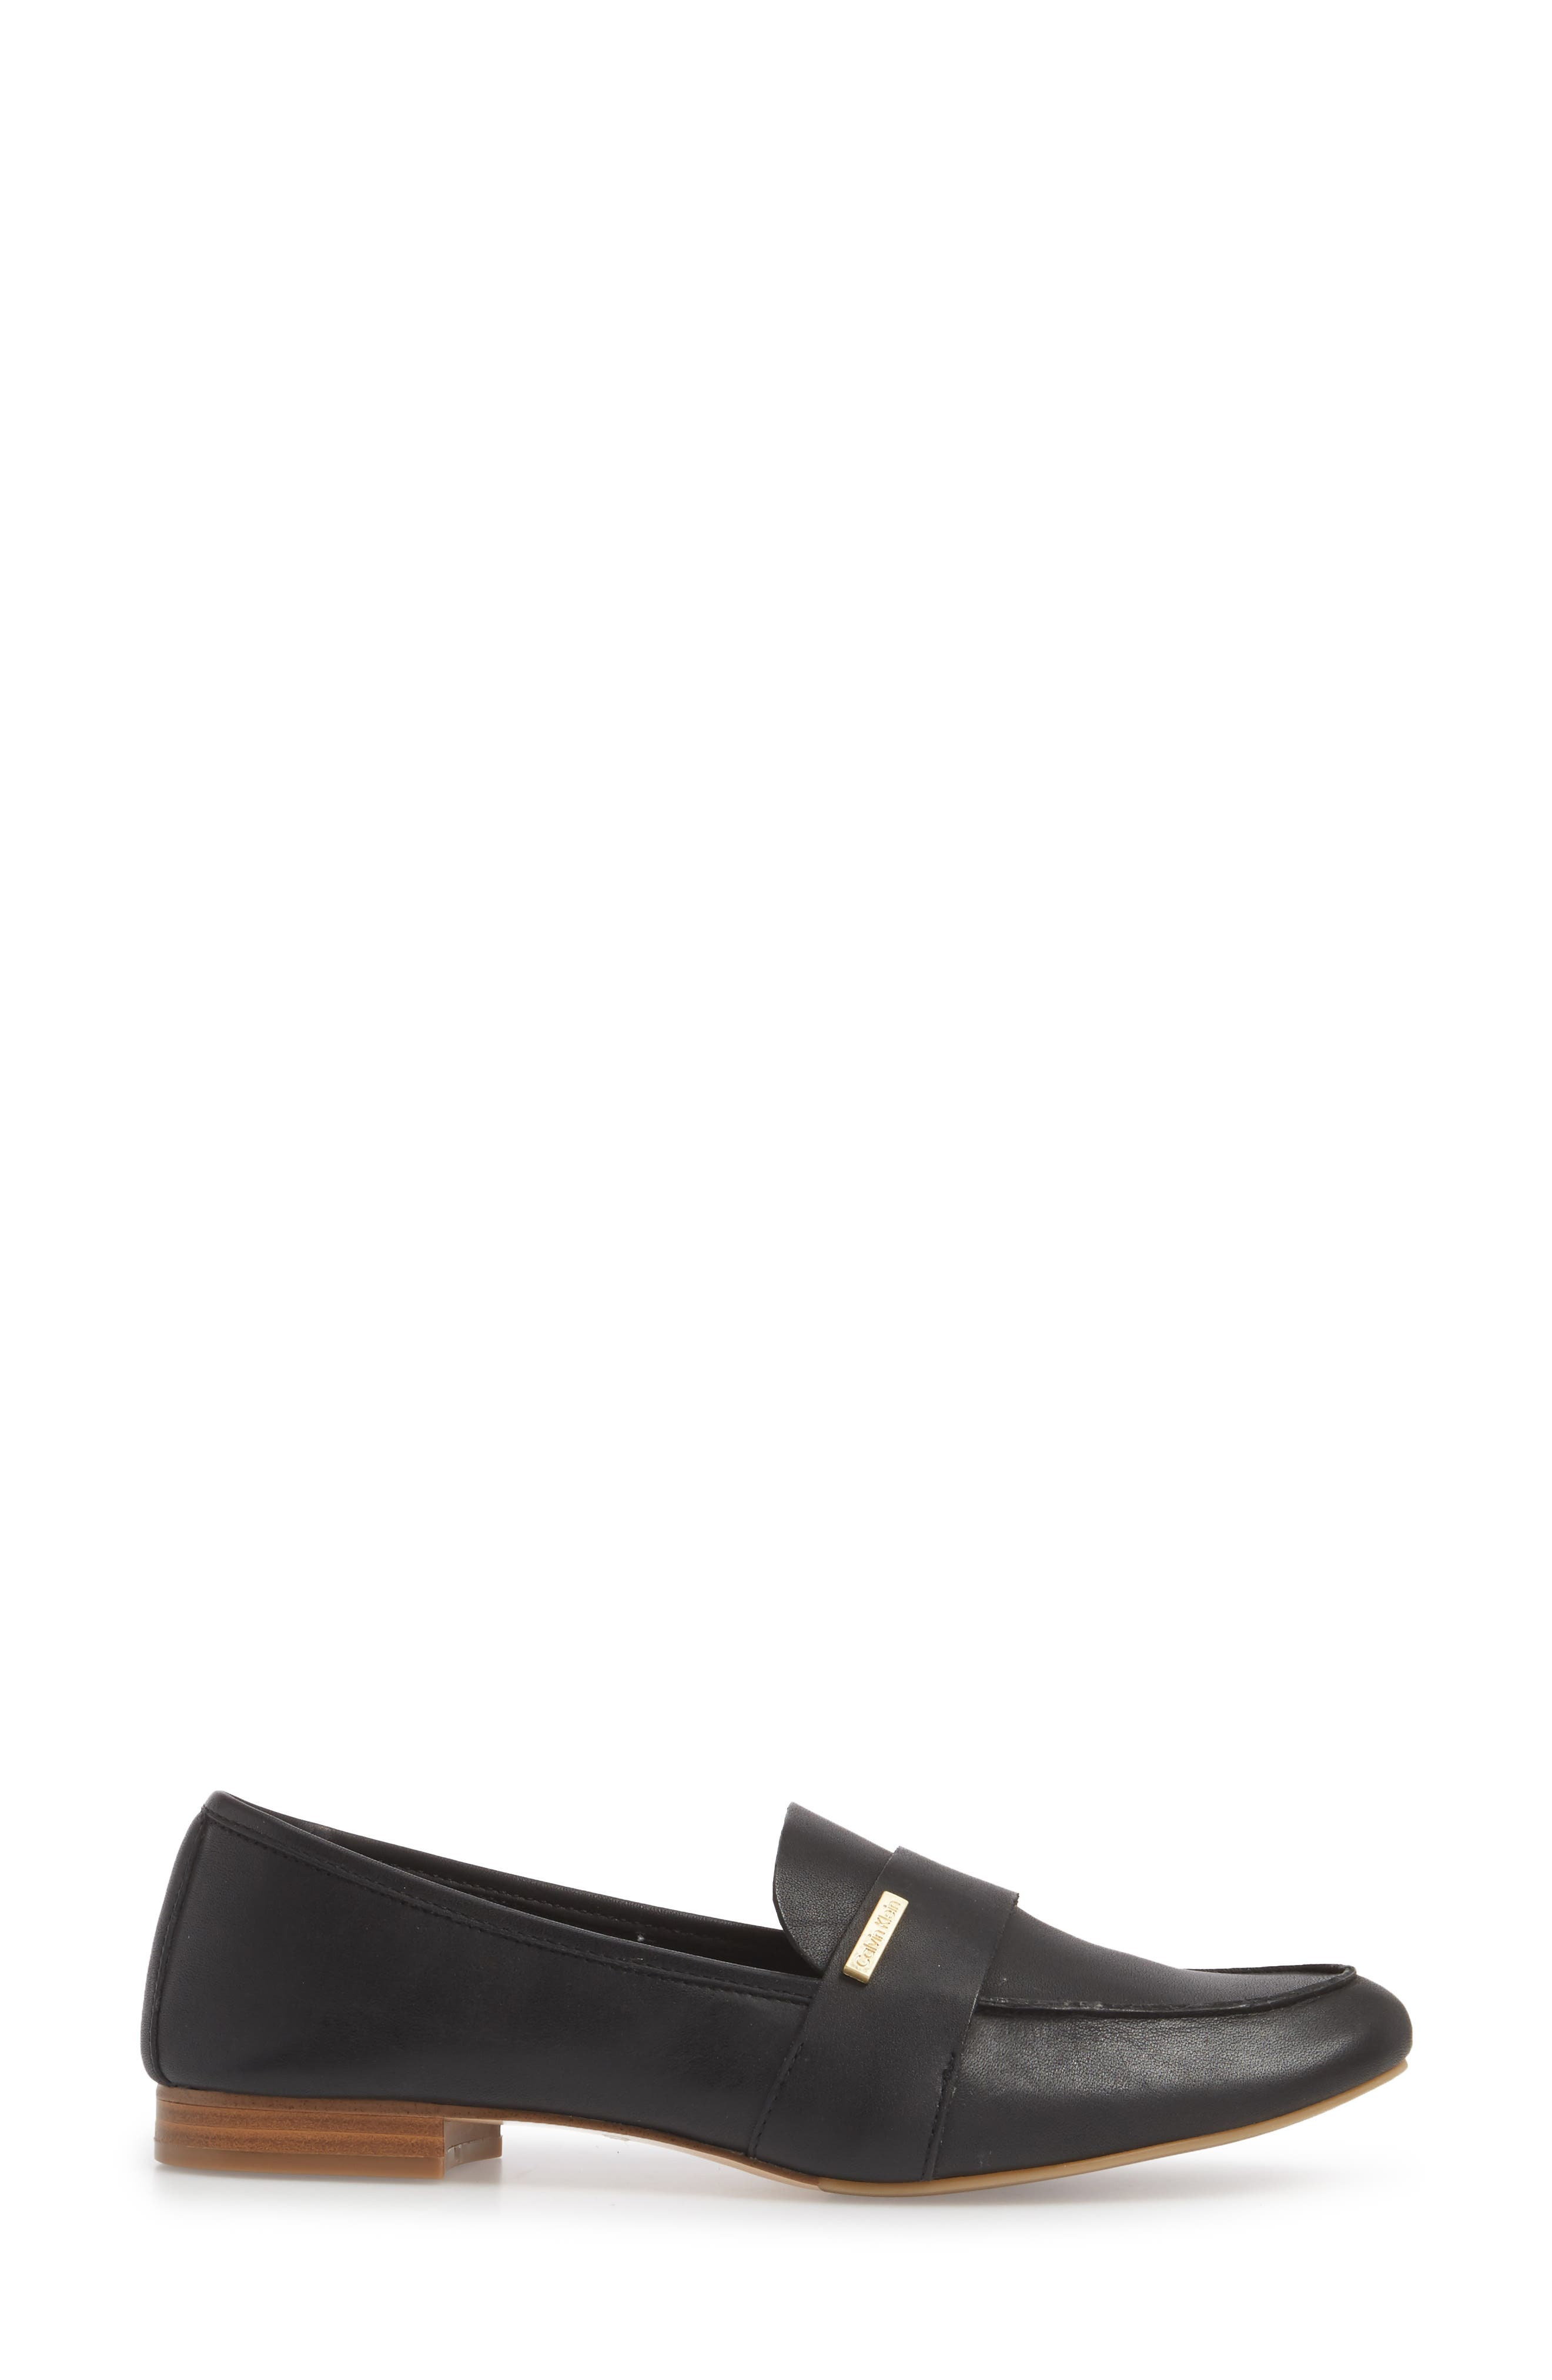 Cemmie Loafer,                             Alternate thumbnail 3, color,                             BLACK LEATHER